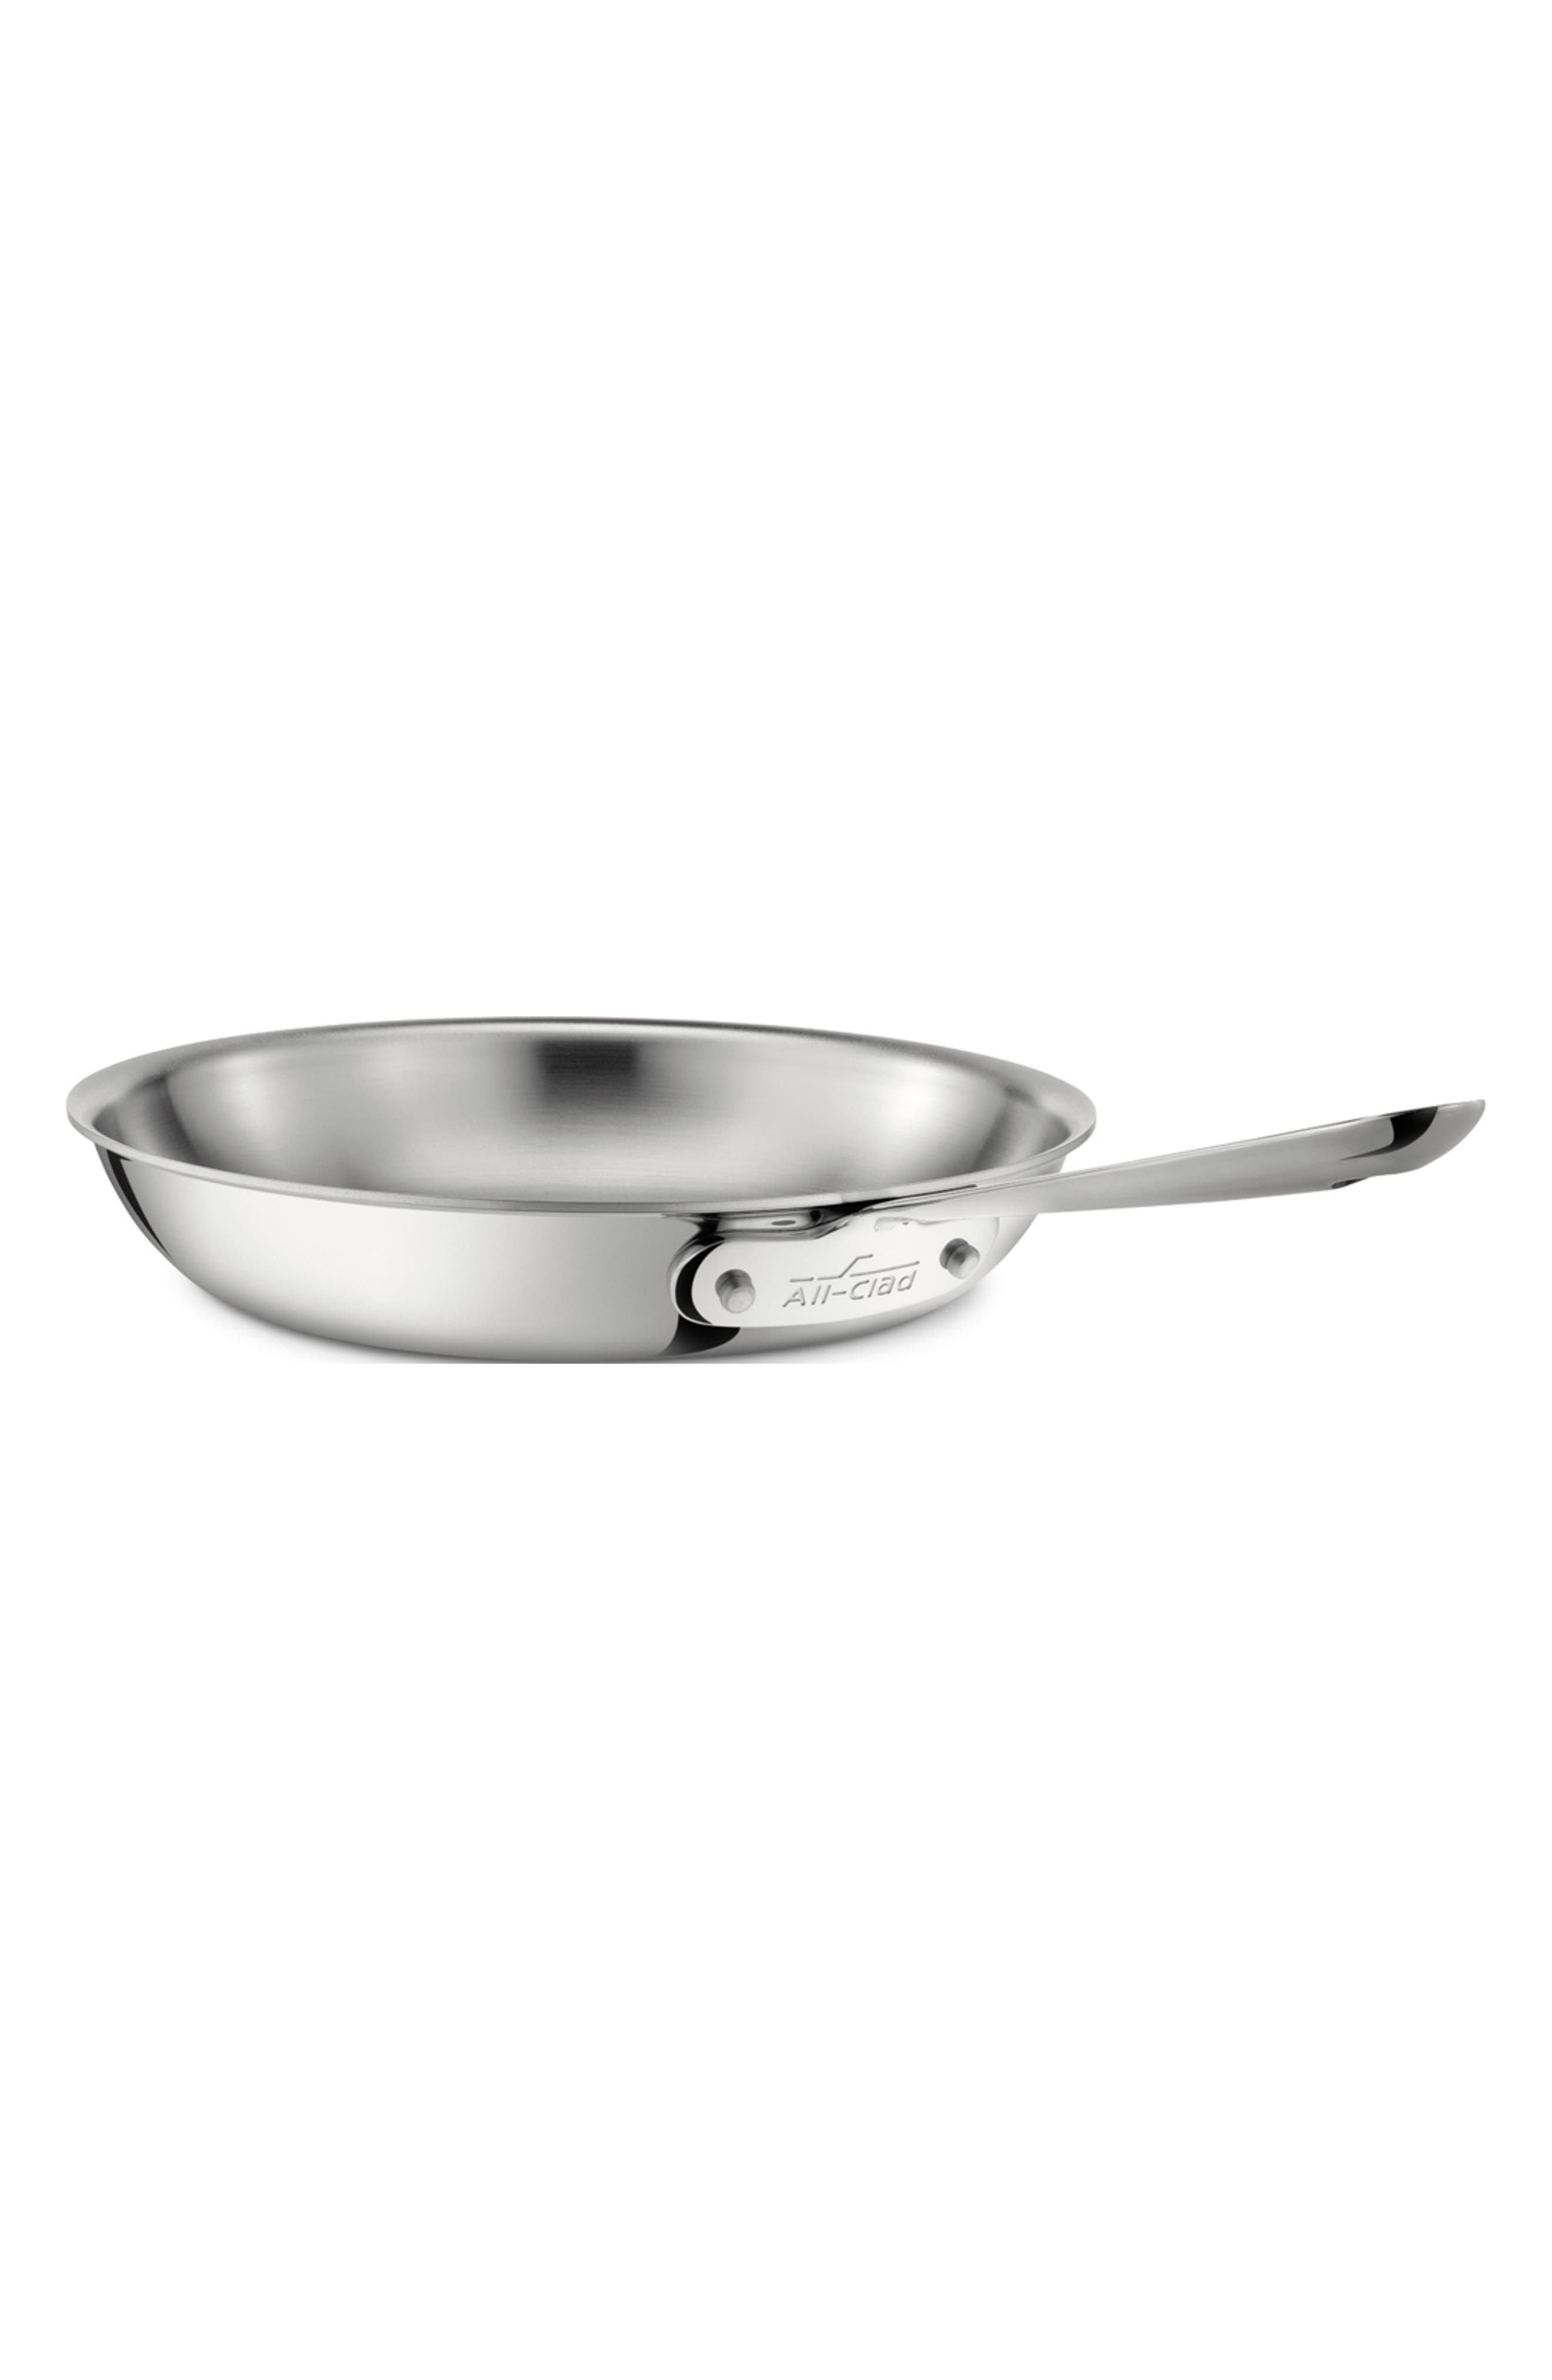 D3 8-Inch Stainless Steel Fry Pan,                             Main thumbnail 1, color,                             SILVER